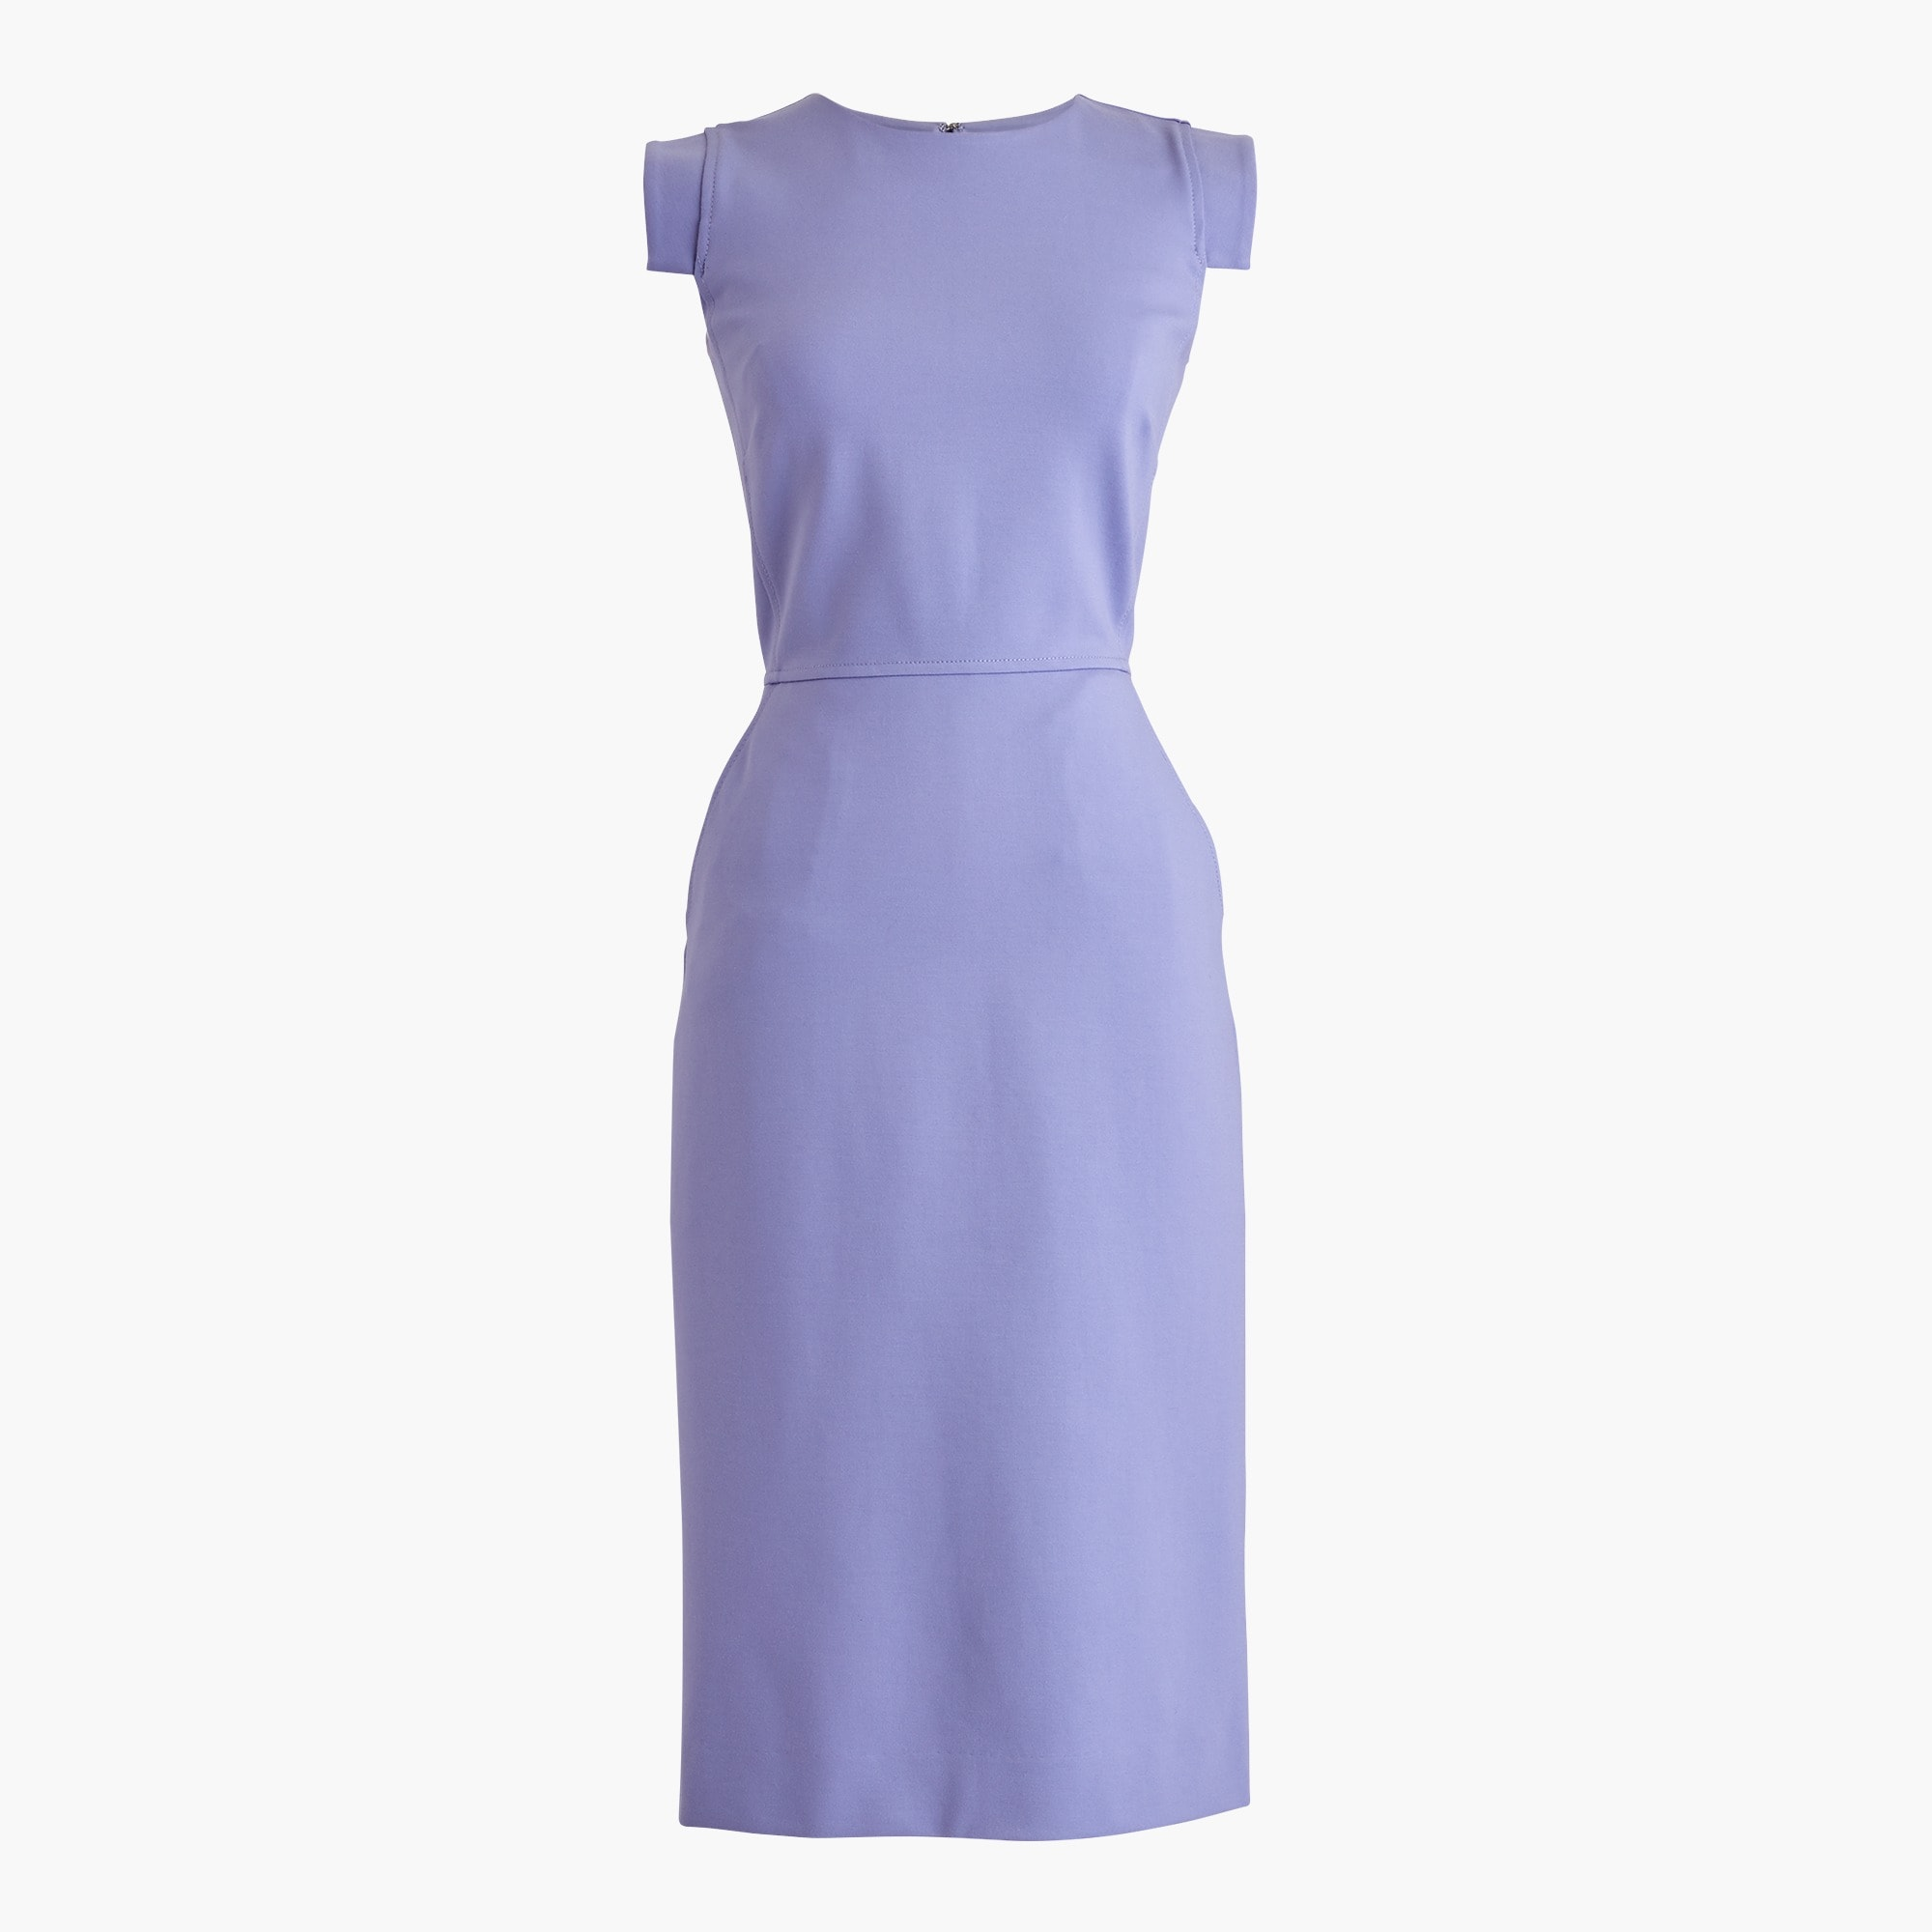 Tall résumé dress in stretch ponte